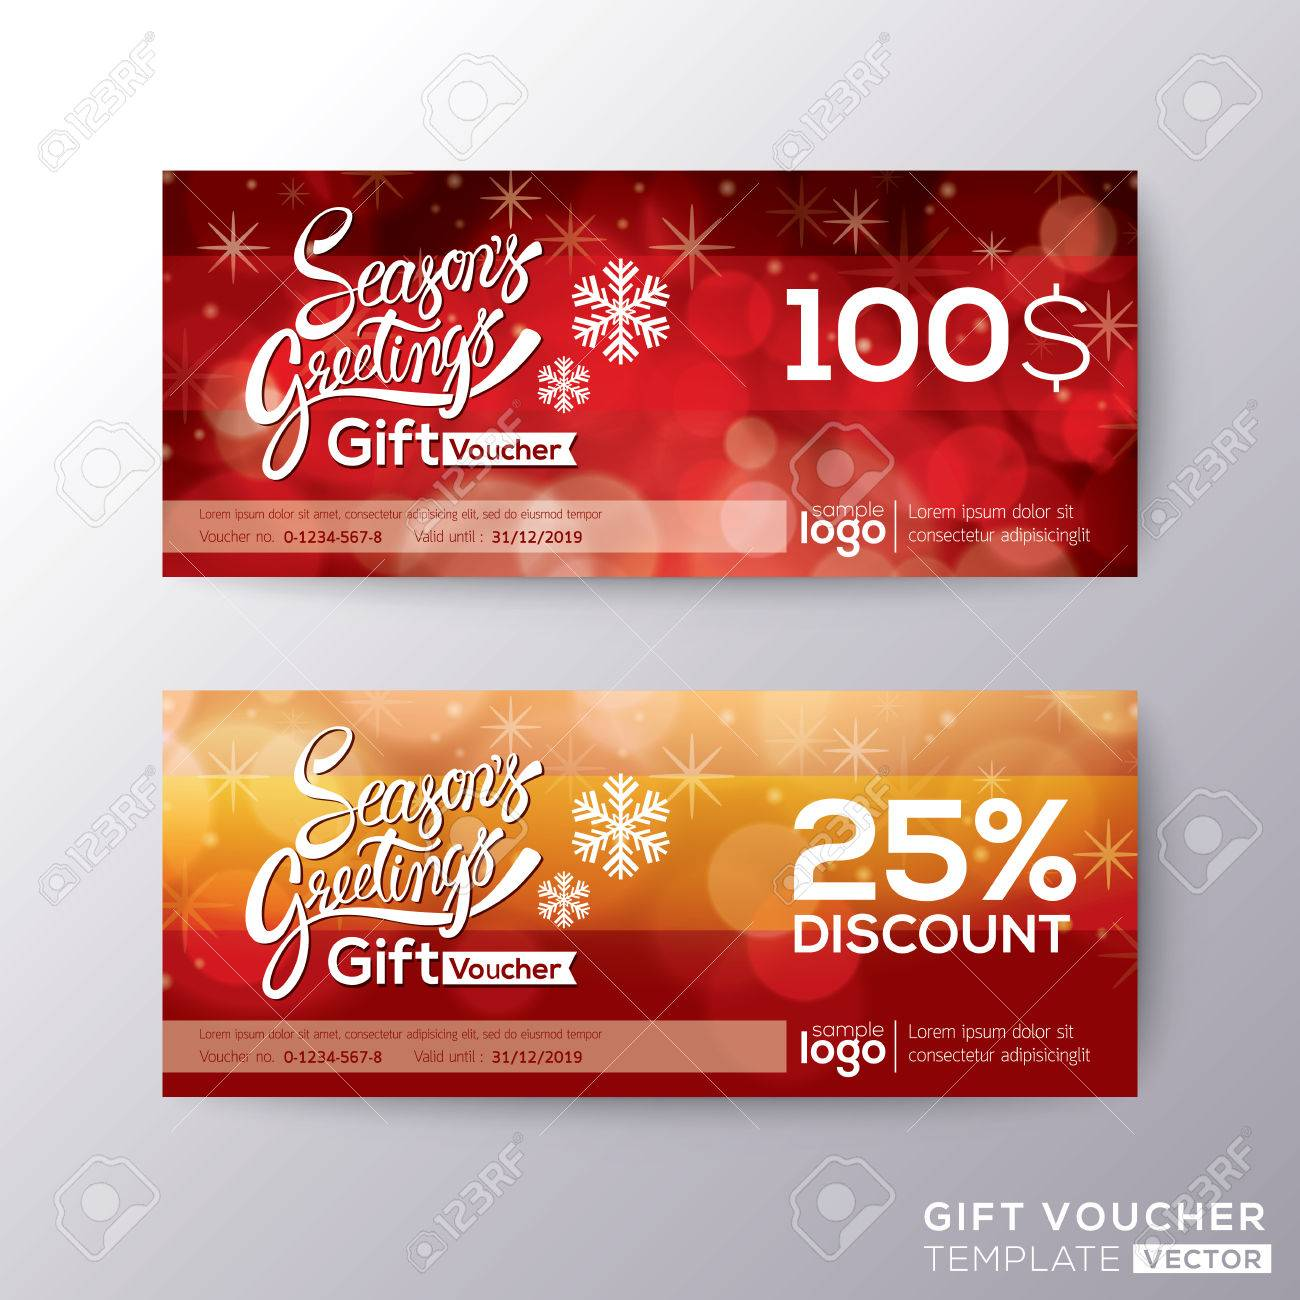 Season greeting holiday gift certificate voucher coupon card background template - 50146372